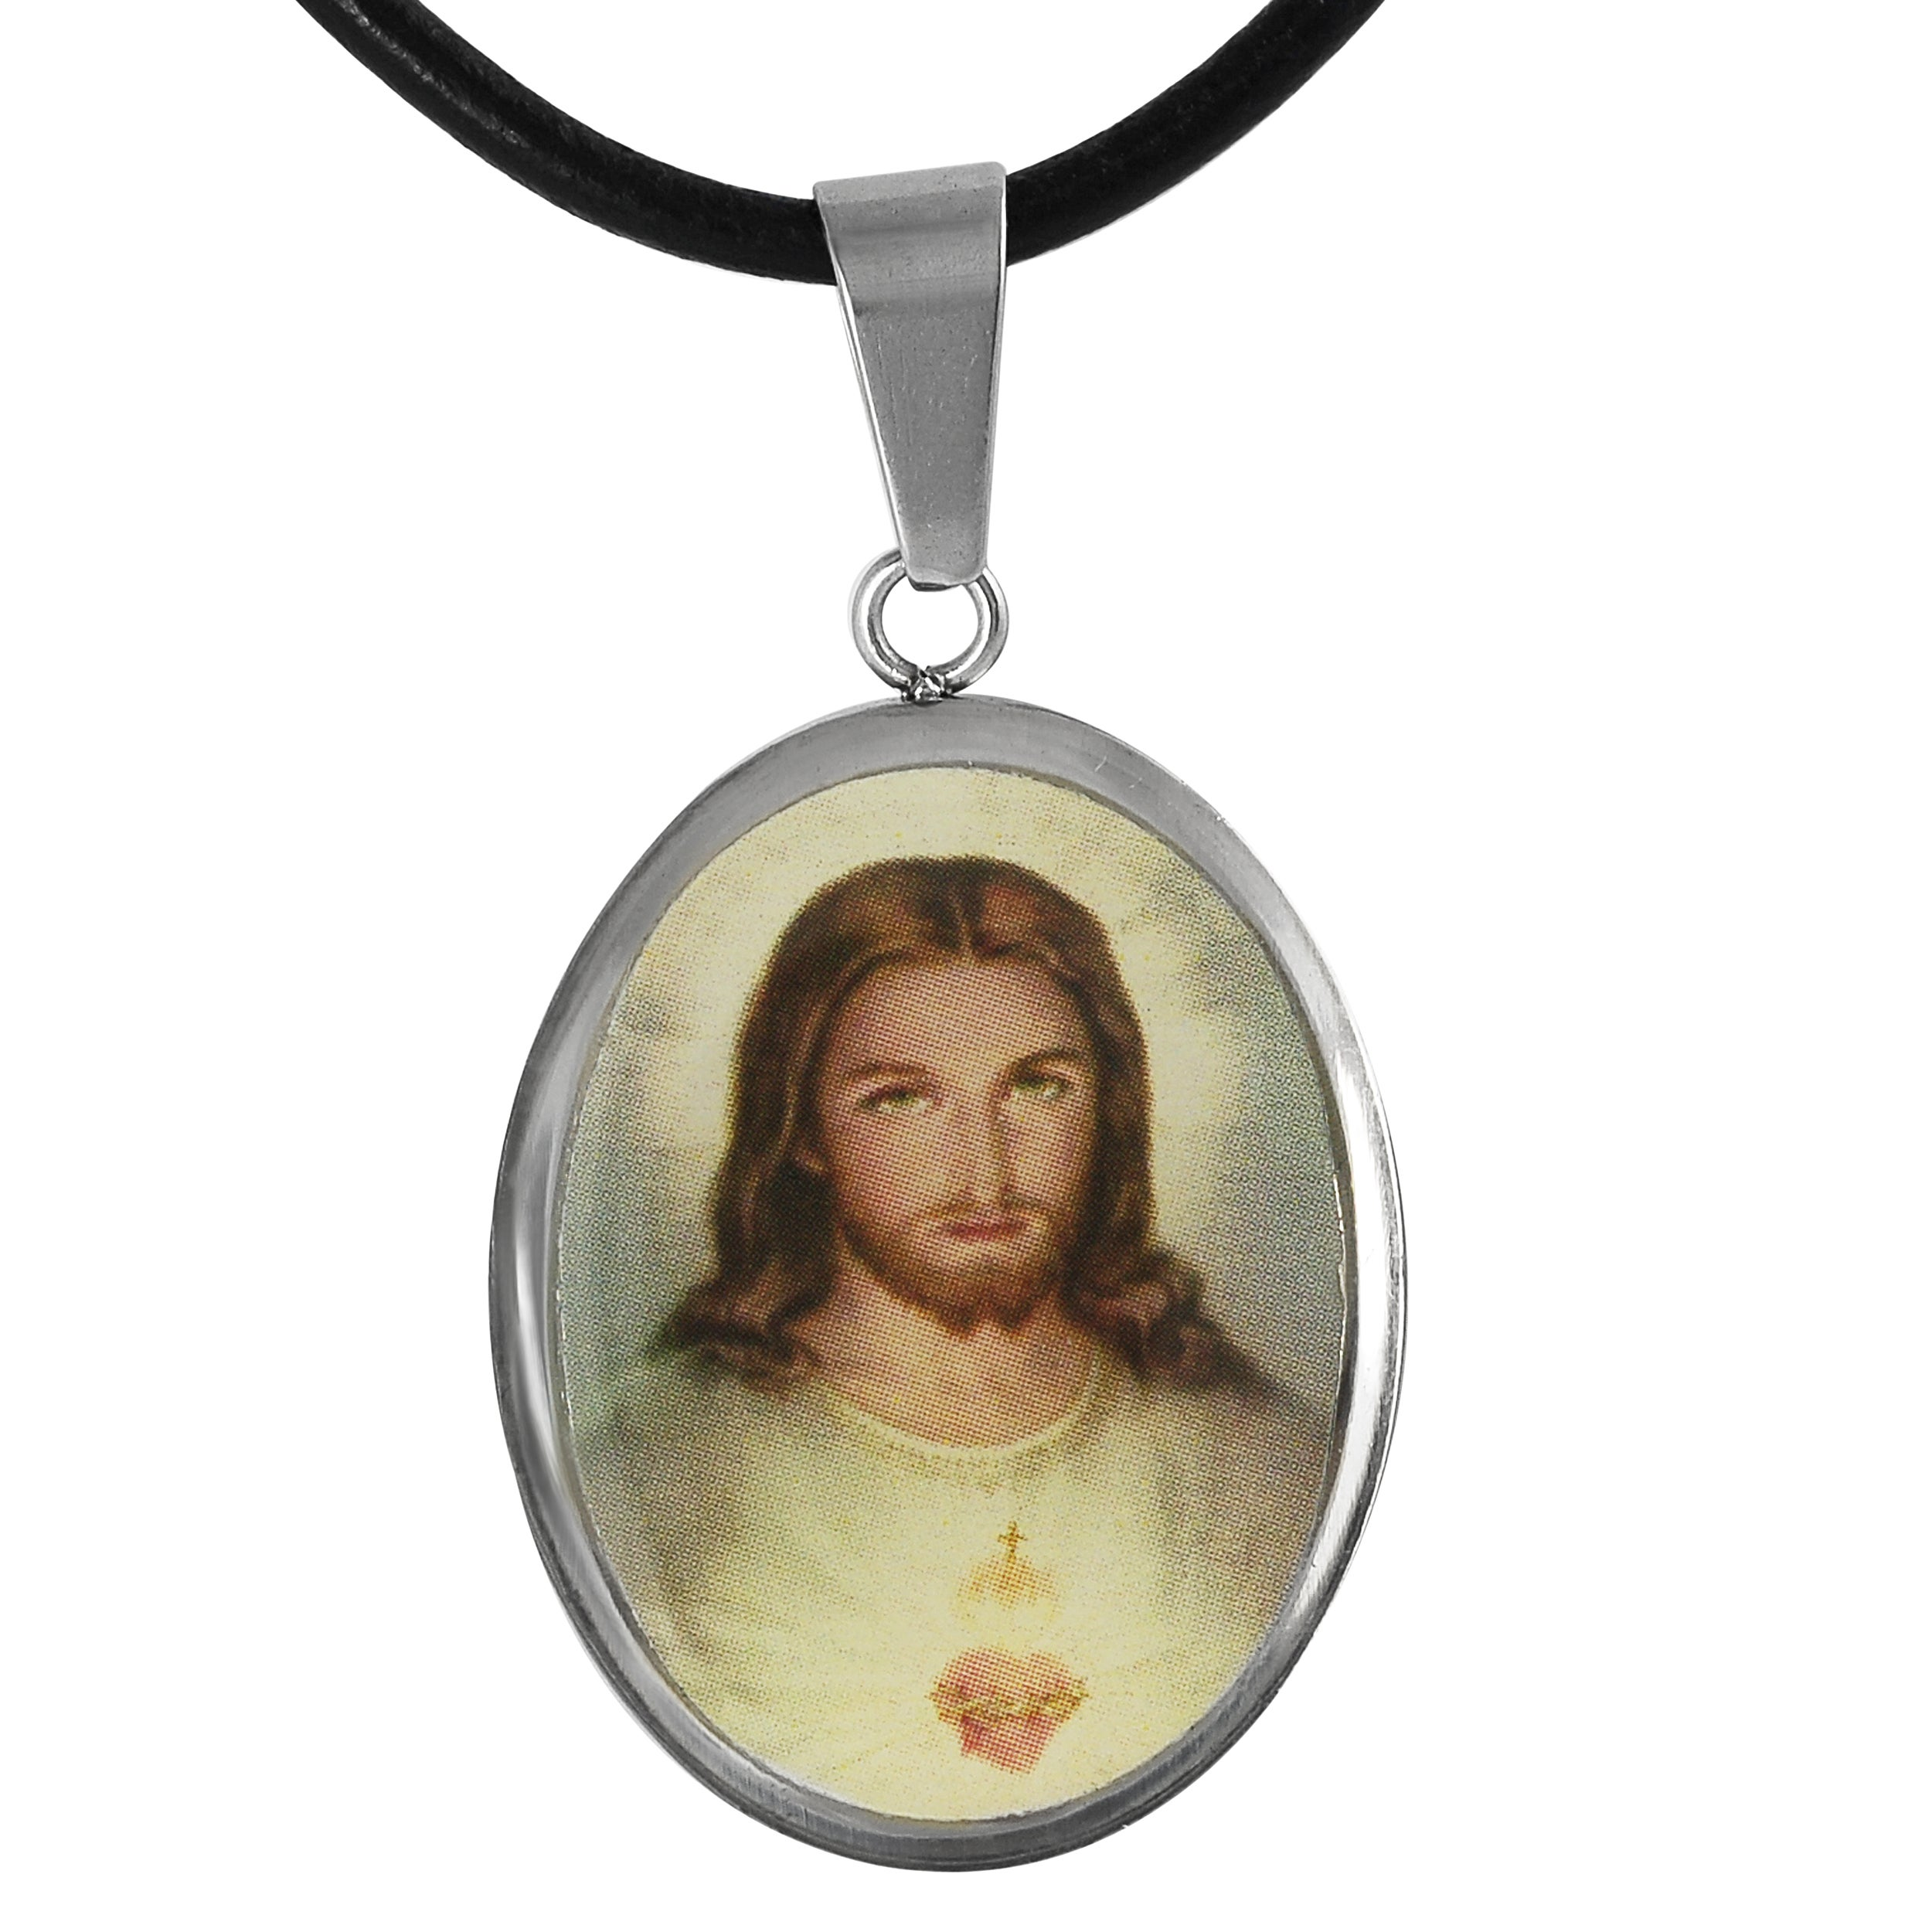 Journee Collection Stainless Steel Jesus Tag Necklace